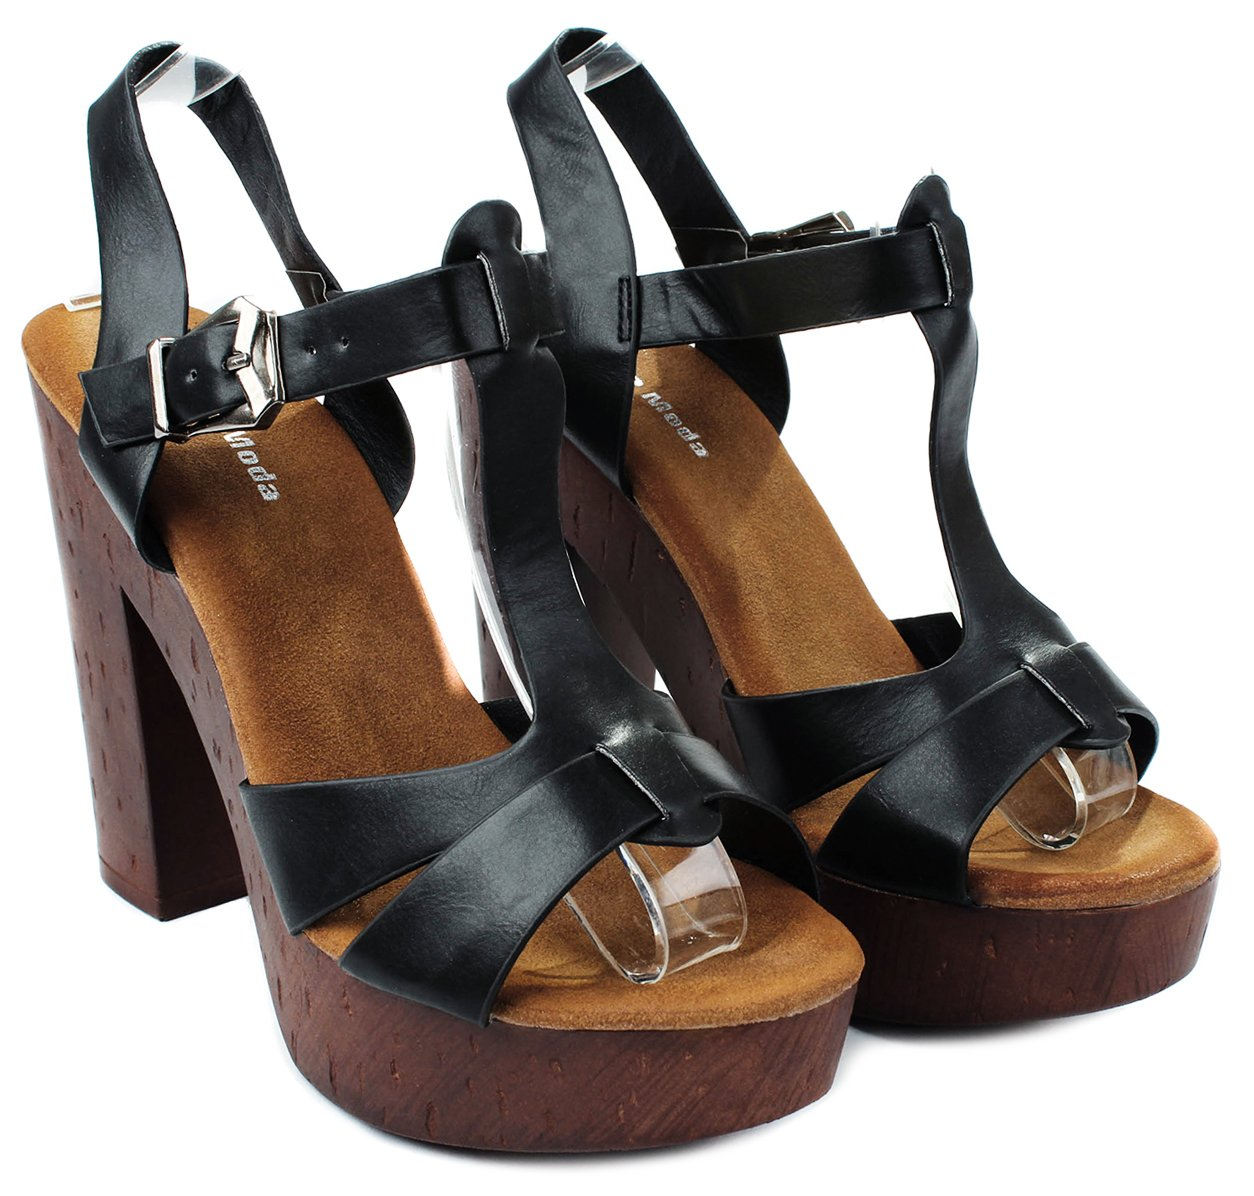 TopModa J-40 T-Strap Leatherette Platform Buckle Chunky High Heel Platform Leatherette Dress Sandals B00X6NEH4S 6 B(M) US|Black 34184c